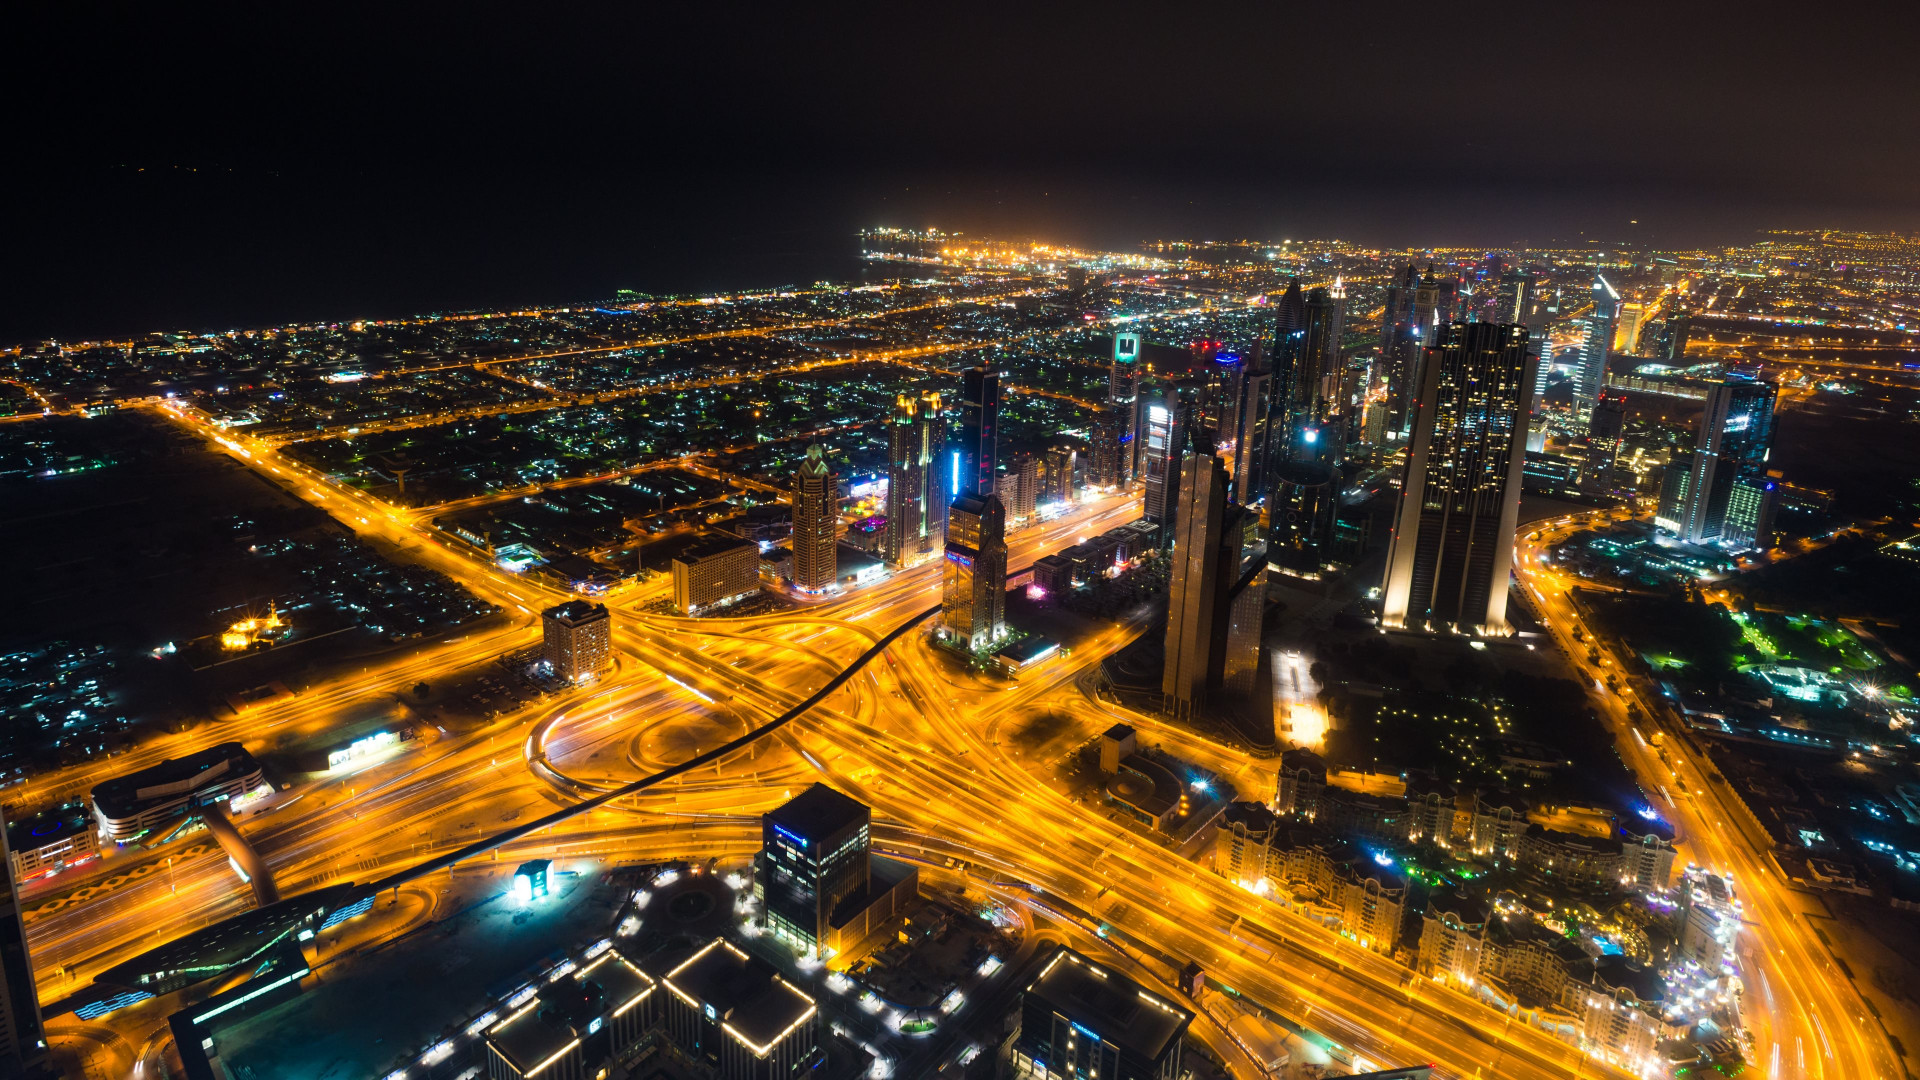 Dubai landscape by night | 1920x1080 wallpaper